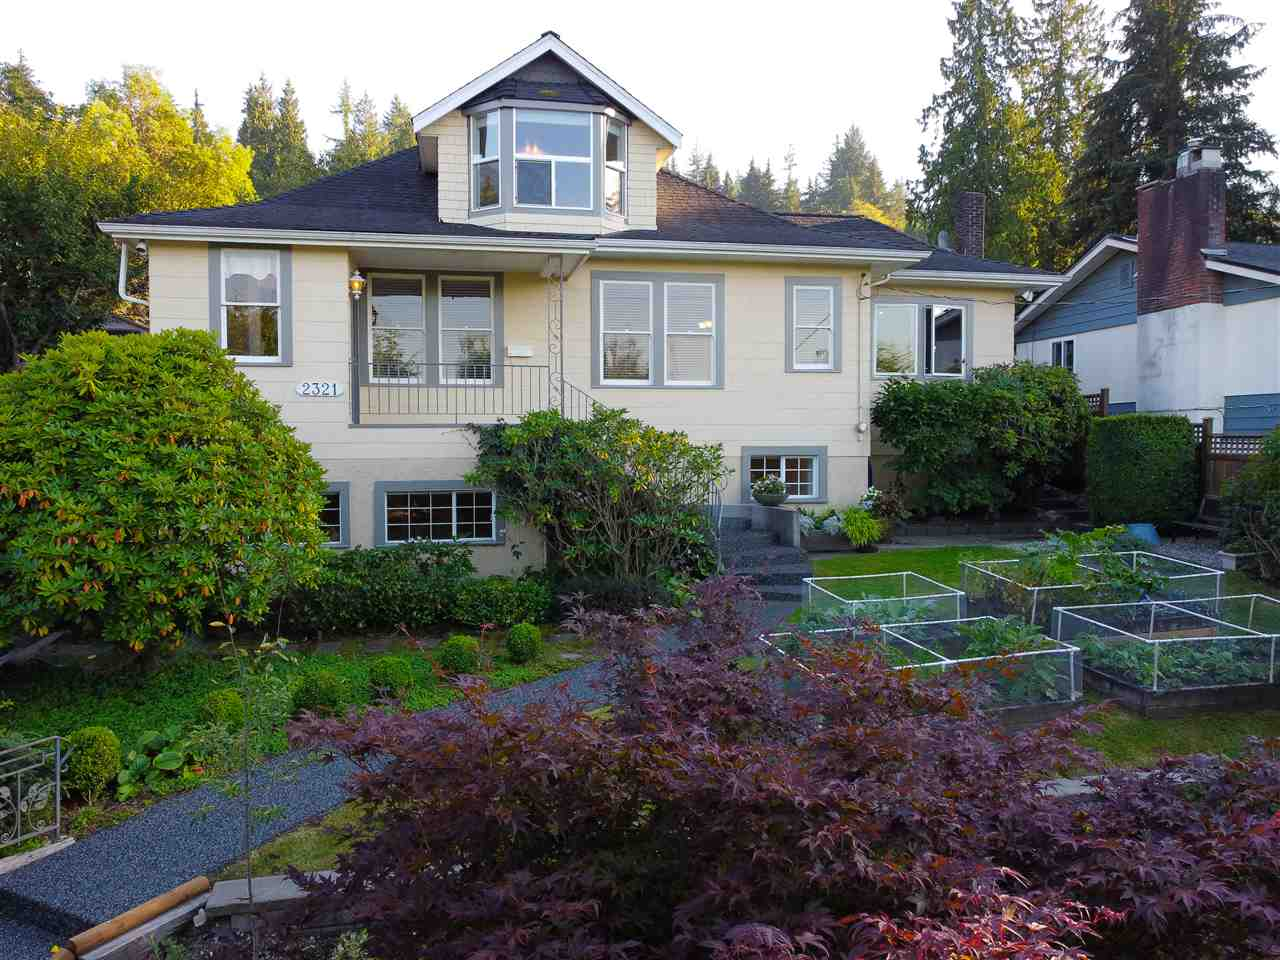 2321 ST GEORGE STREET - Port Moody Centre House/Single Family for sale, 4 Bedrooms (R2497458) - #1